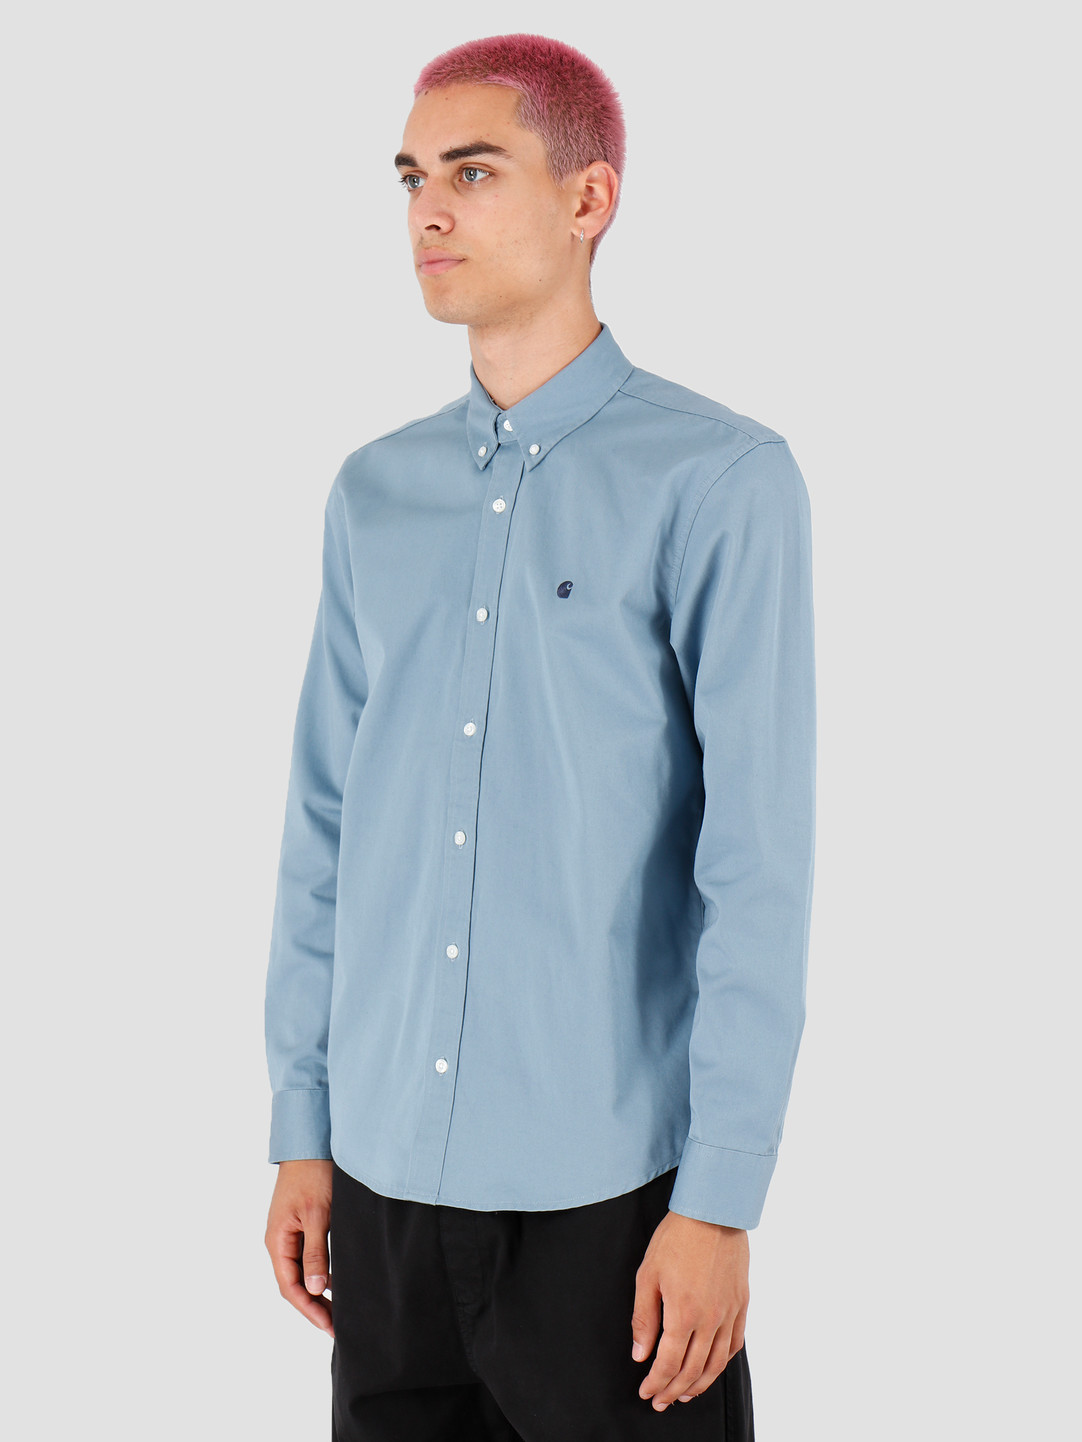 Carhartt WIP Carhartt WIP Longsleeve Madison Shirt Cold Blue Dark Navy I023339